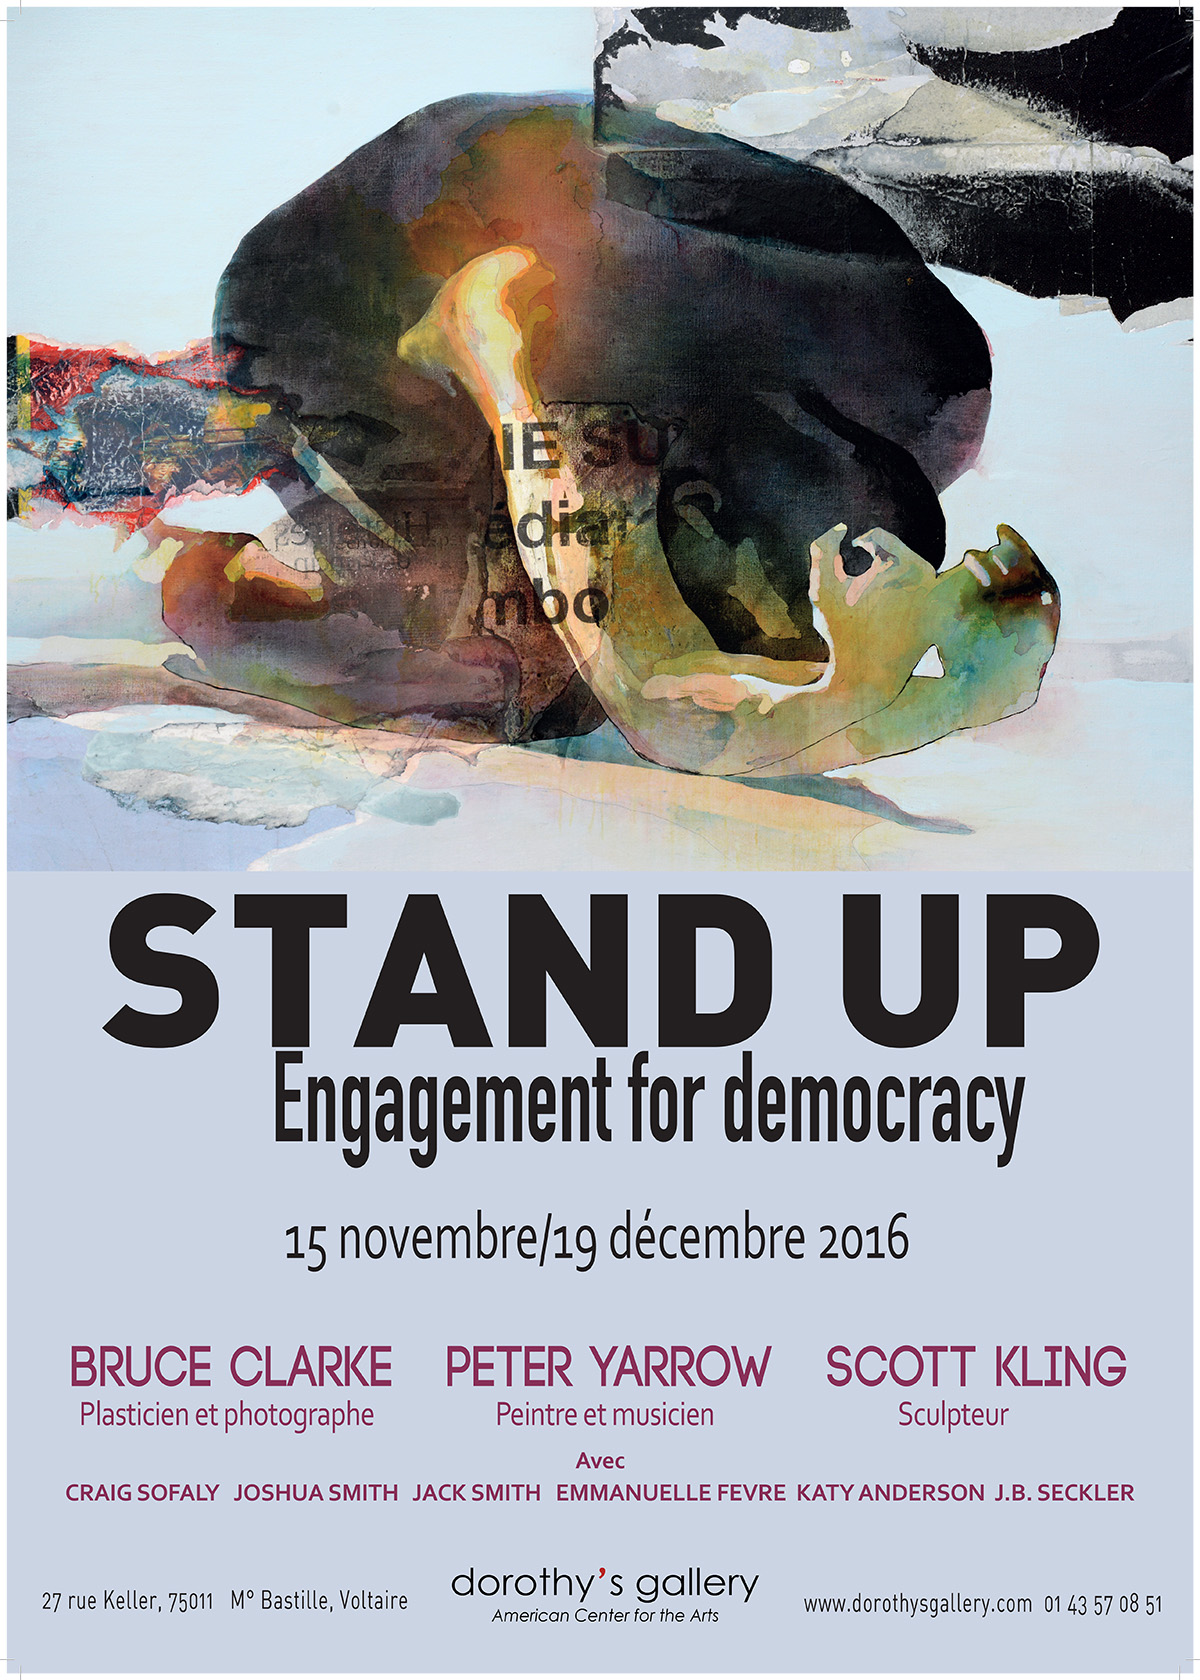 Stand Up Engagement for democracy